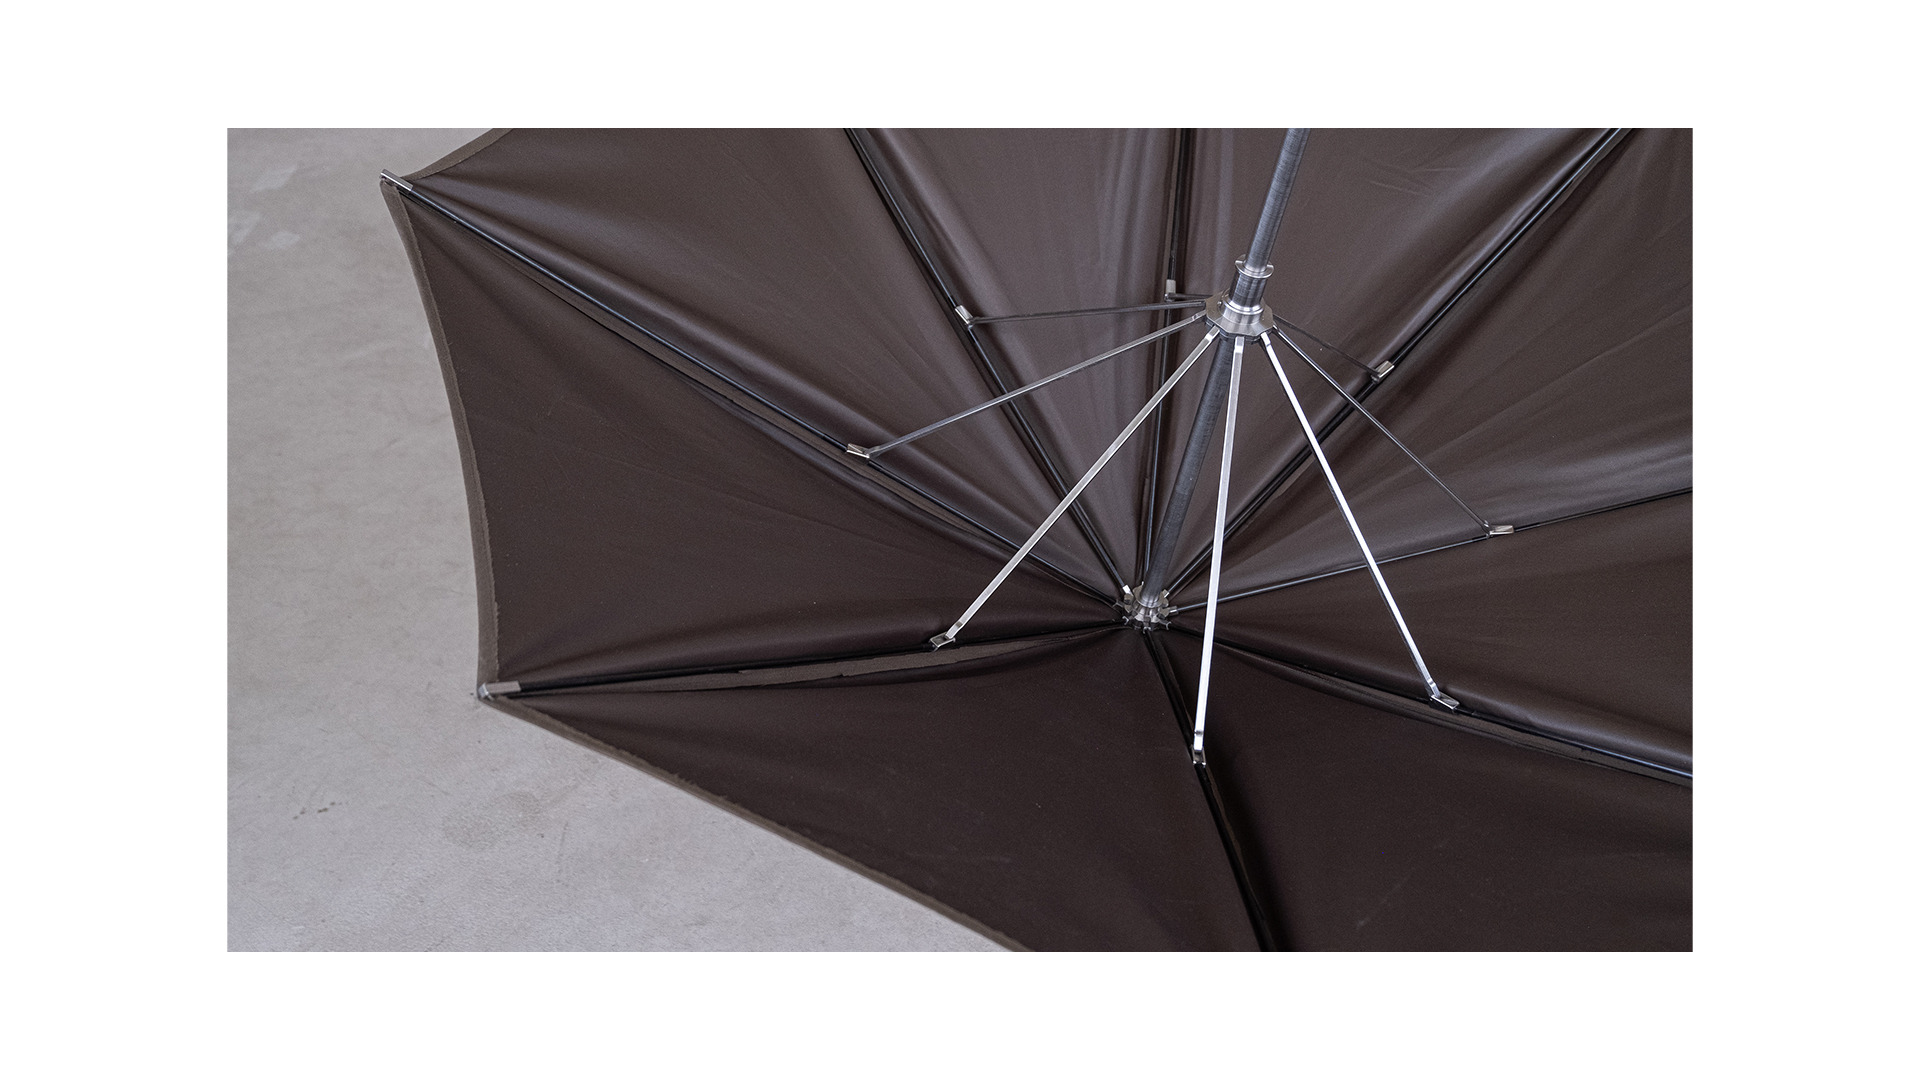 The canopy structure is supported by carbon fibre struts which are highly energy intensive yet very strong and light.